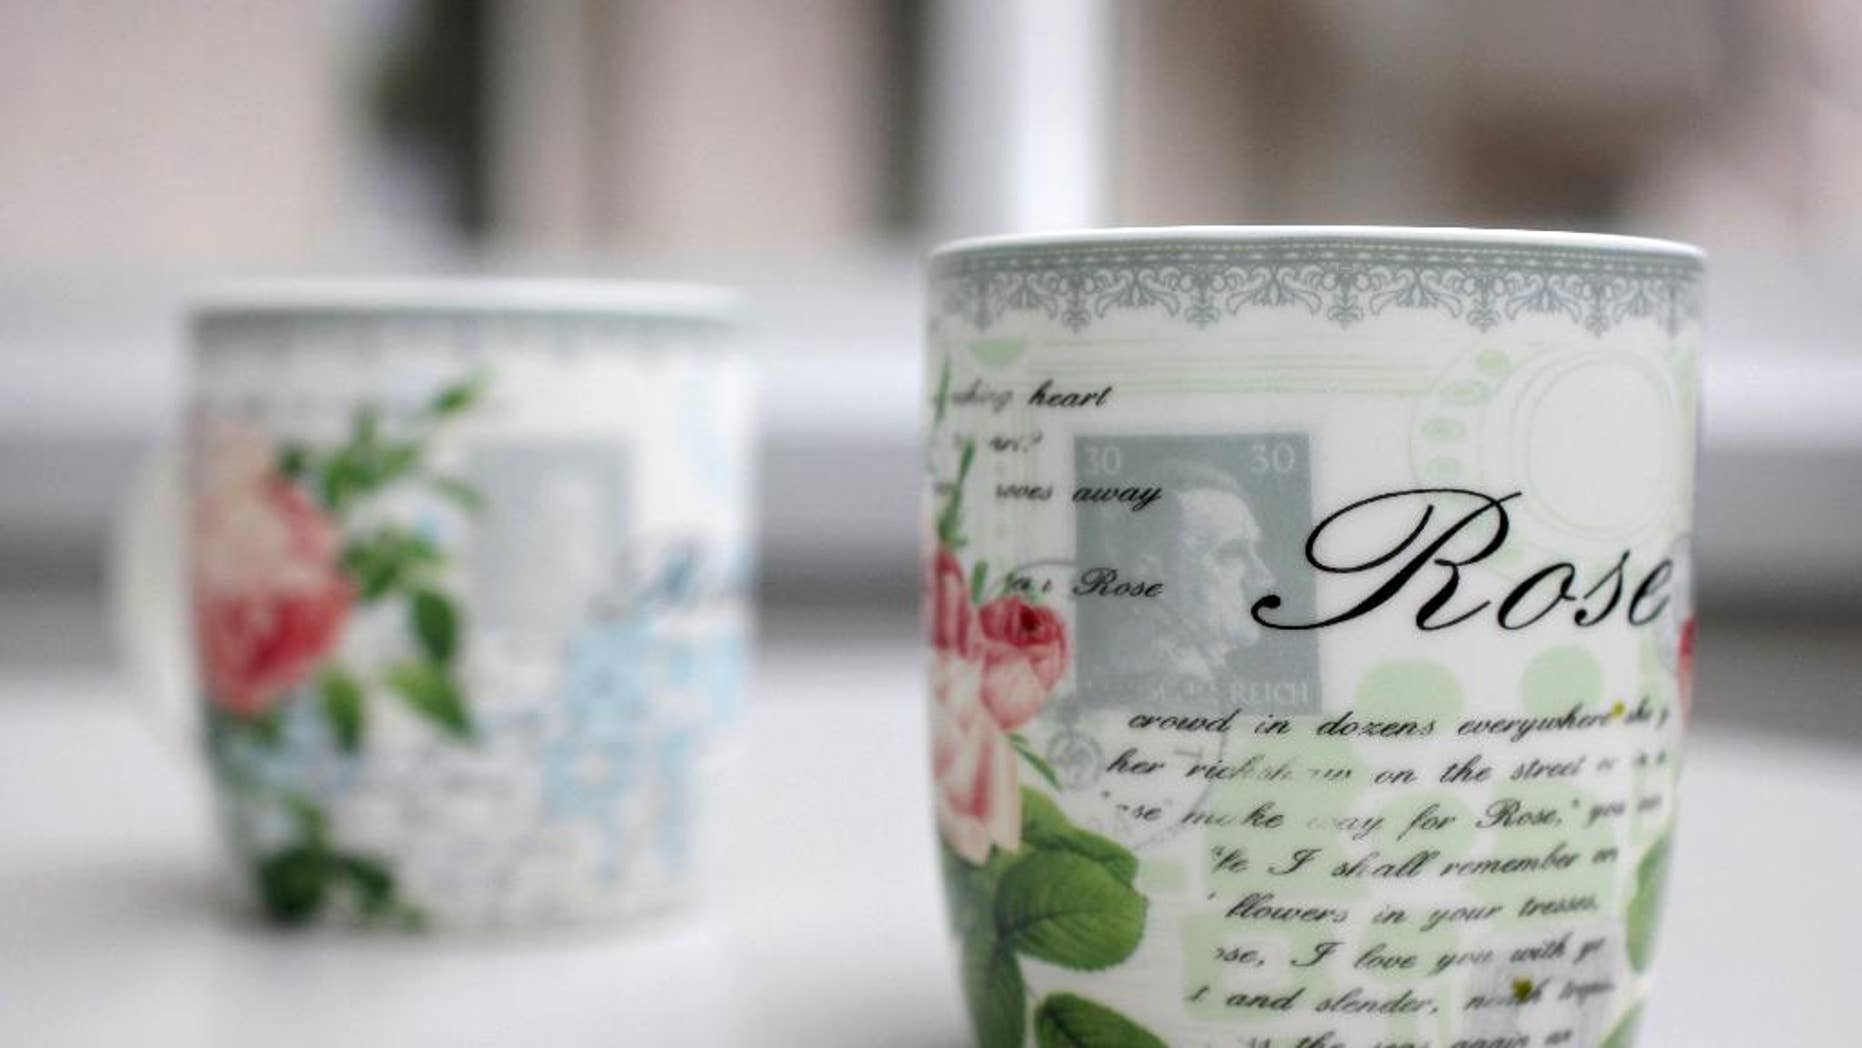 "Coffee cups with a small Hitler portrait are pictured in Bielefeld Germany, Thursday, April 10, 2014. A small German furniture chain says it inadvertently ordered several thousand of these coffee cups bearing a faint portrait of Adolf Hitler from China. Christian Zurbrueggen, co-owner of the Zurbrueggen chain, told German news agency dpa on Thursday that 175 of the offending cups were sold before customers pointed out the problem. Zurbrueggen said: ""I want to take the cups out of circulation."" The remaining 4,825 cups have been destroyed and he says he's offering a 20-euro (US dollar 27.60) voucher for the return of the others, sold for 1.99 euros each. (AP Photo/dpa, Oliver Krato)"